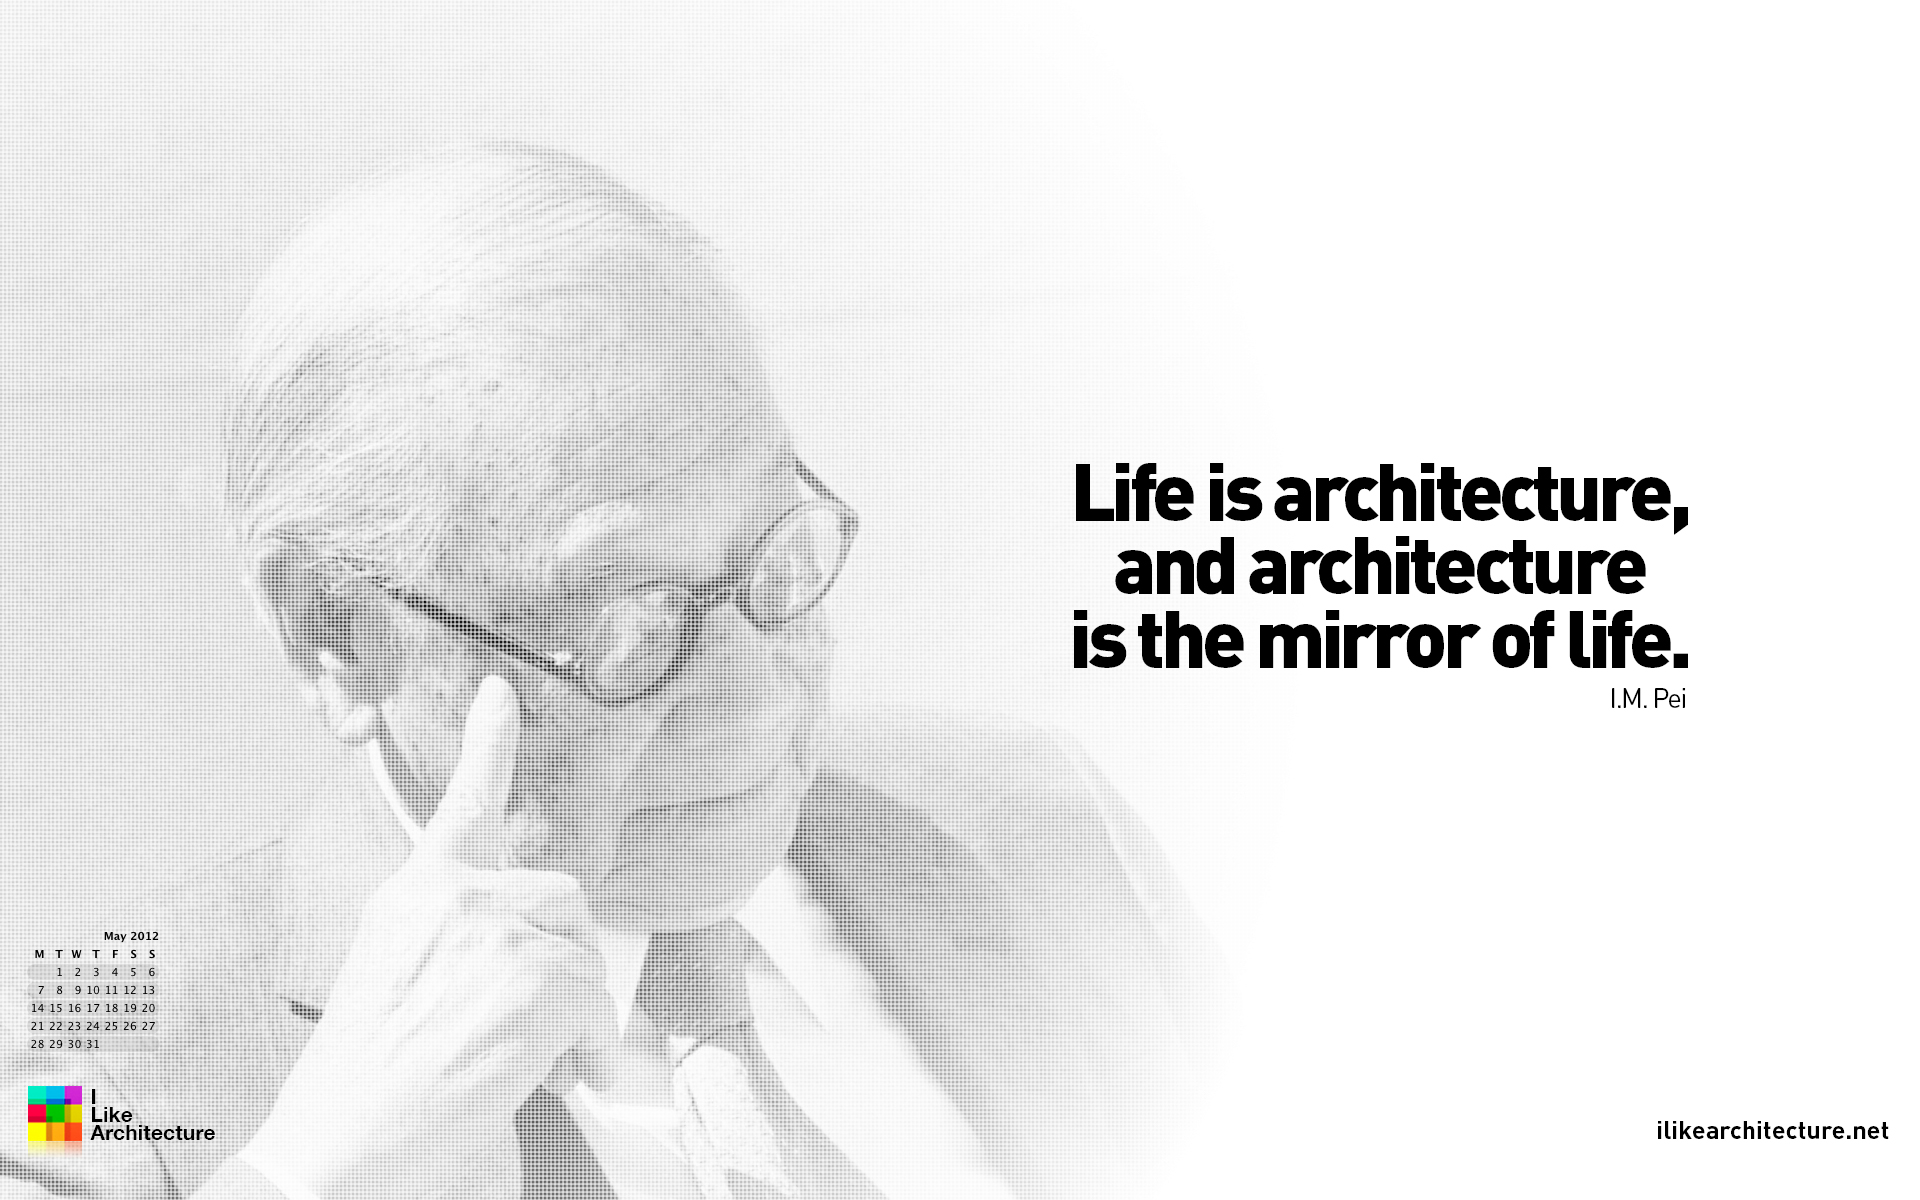 Architecture Life Is And The Mirror Of IM Pei Ilikearchitecture